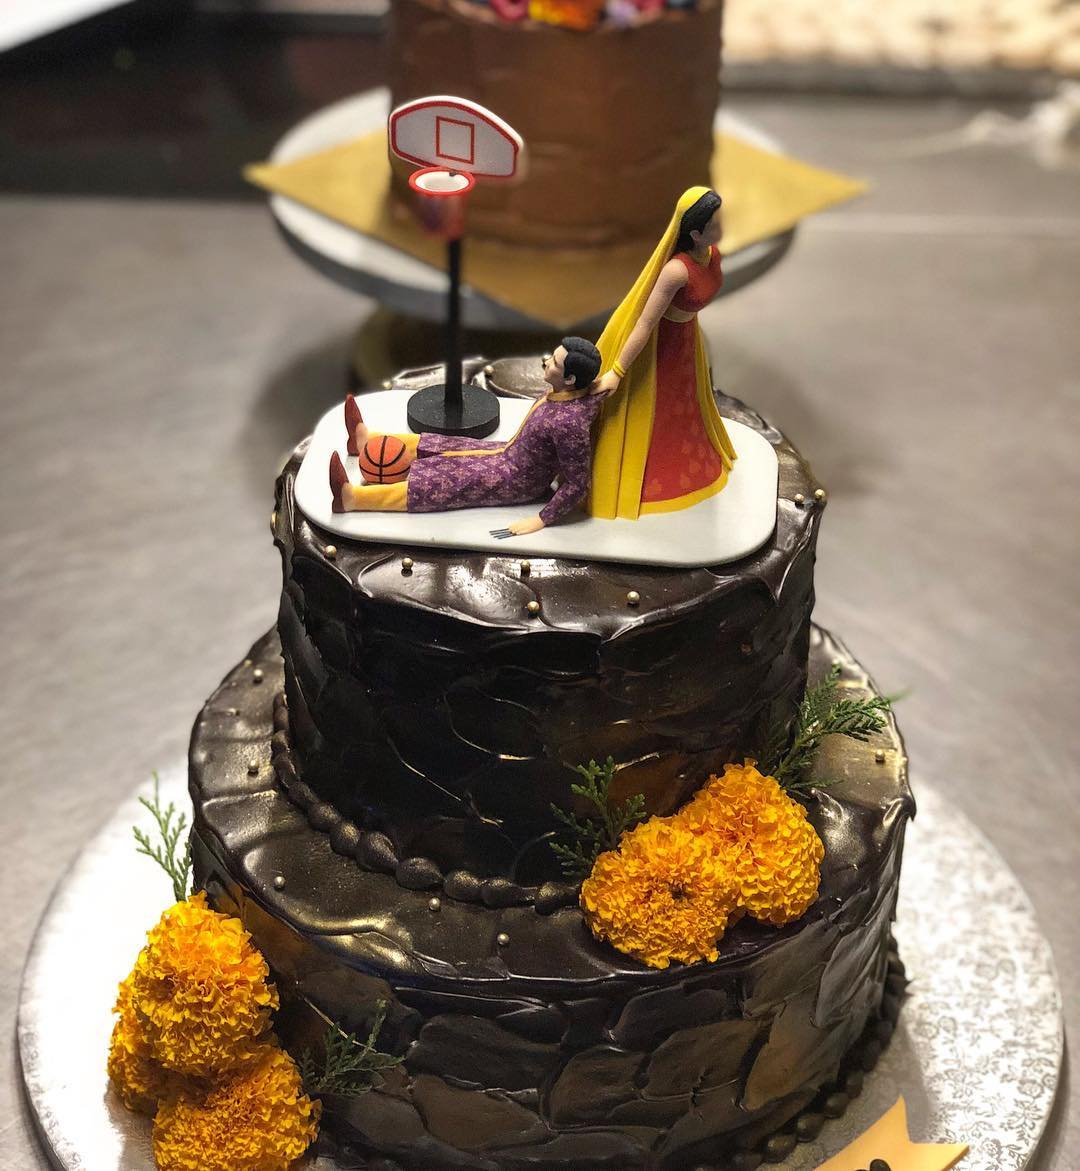 Sonam Kapoor's Wedding cake by Pooja Dhingra - owner of Le15 Patisserie cafe